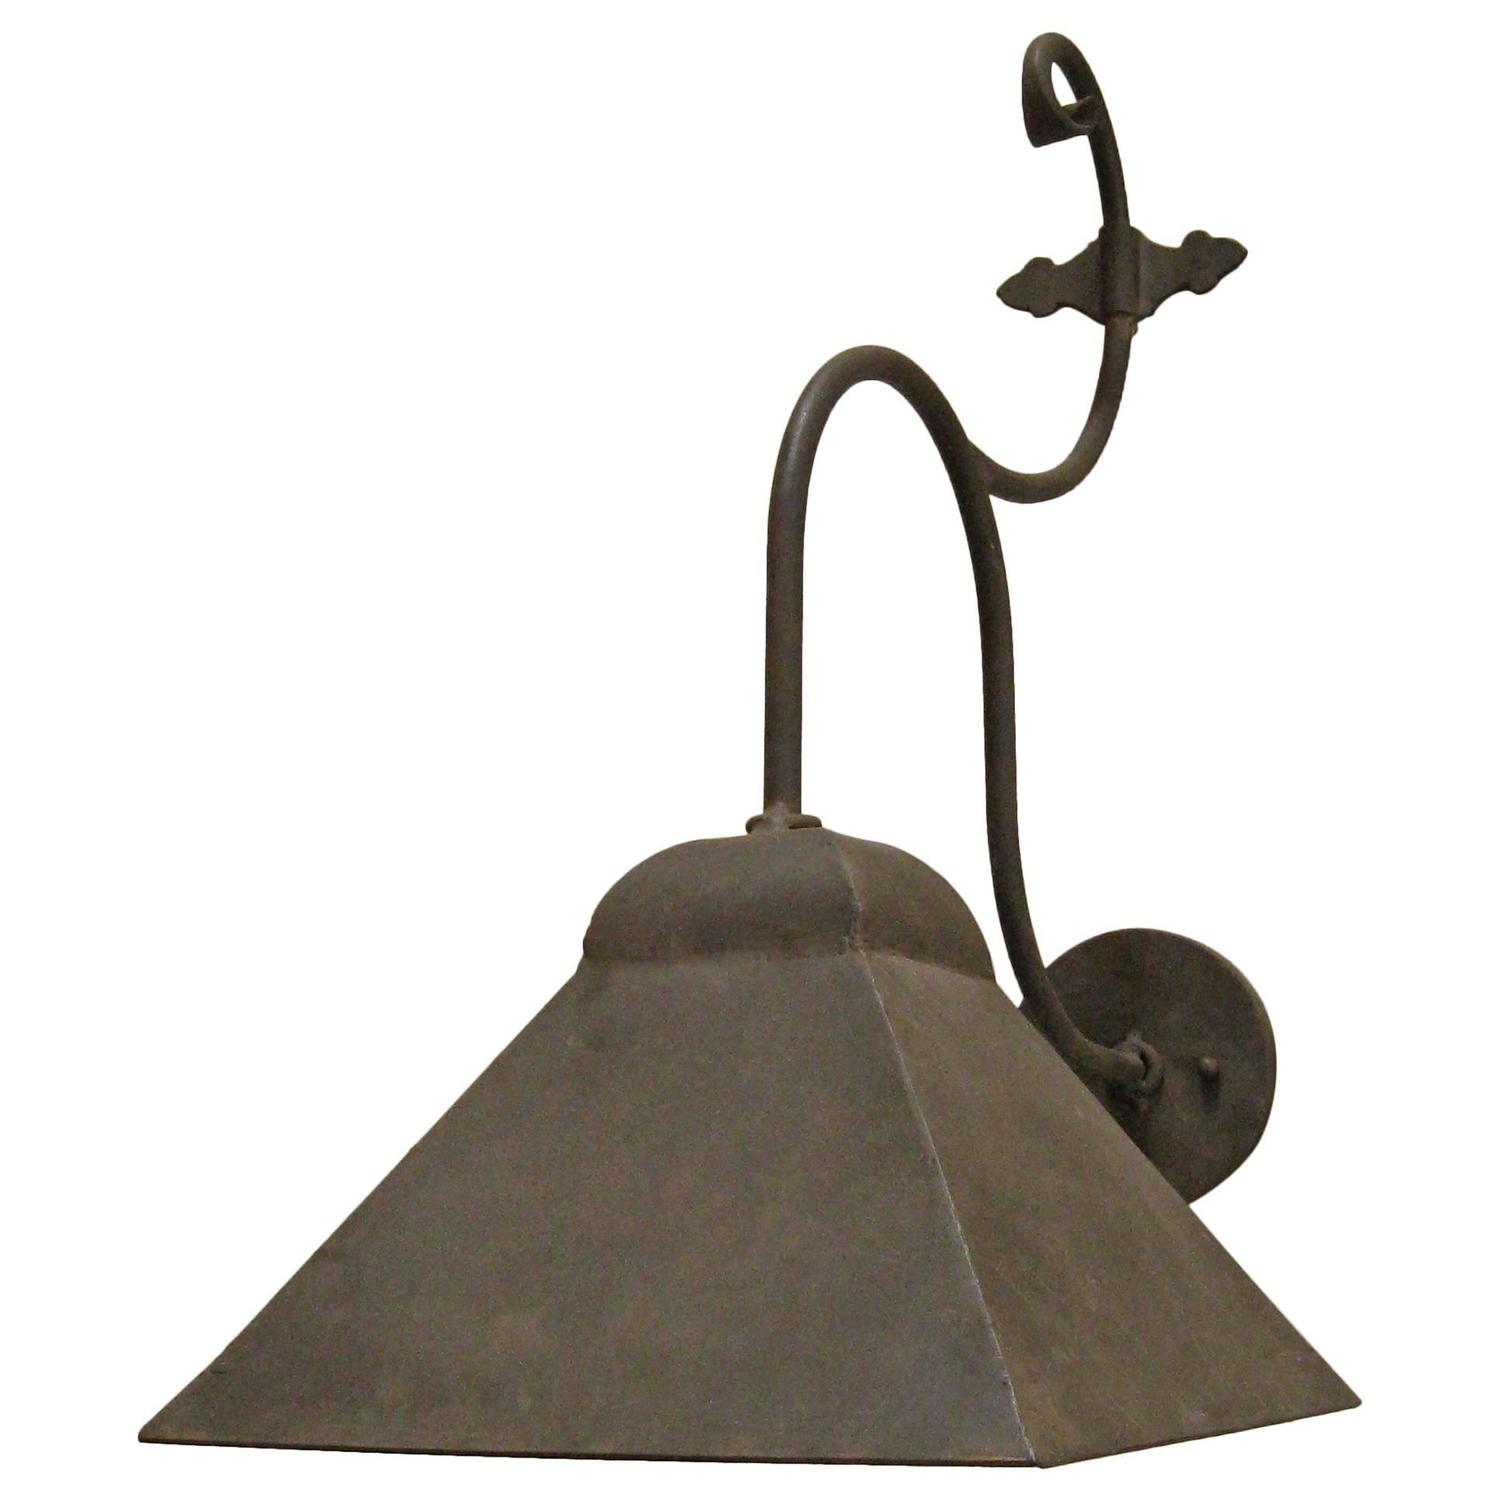 Iron Outdoor Wall Sconces : Iron Exterior Hooded Wall Sconce For Sale at 1stdibs